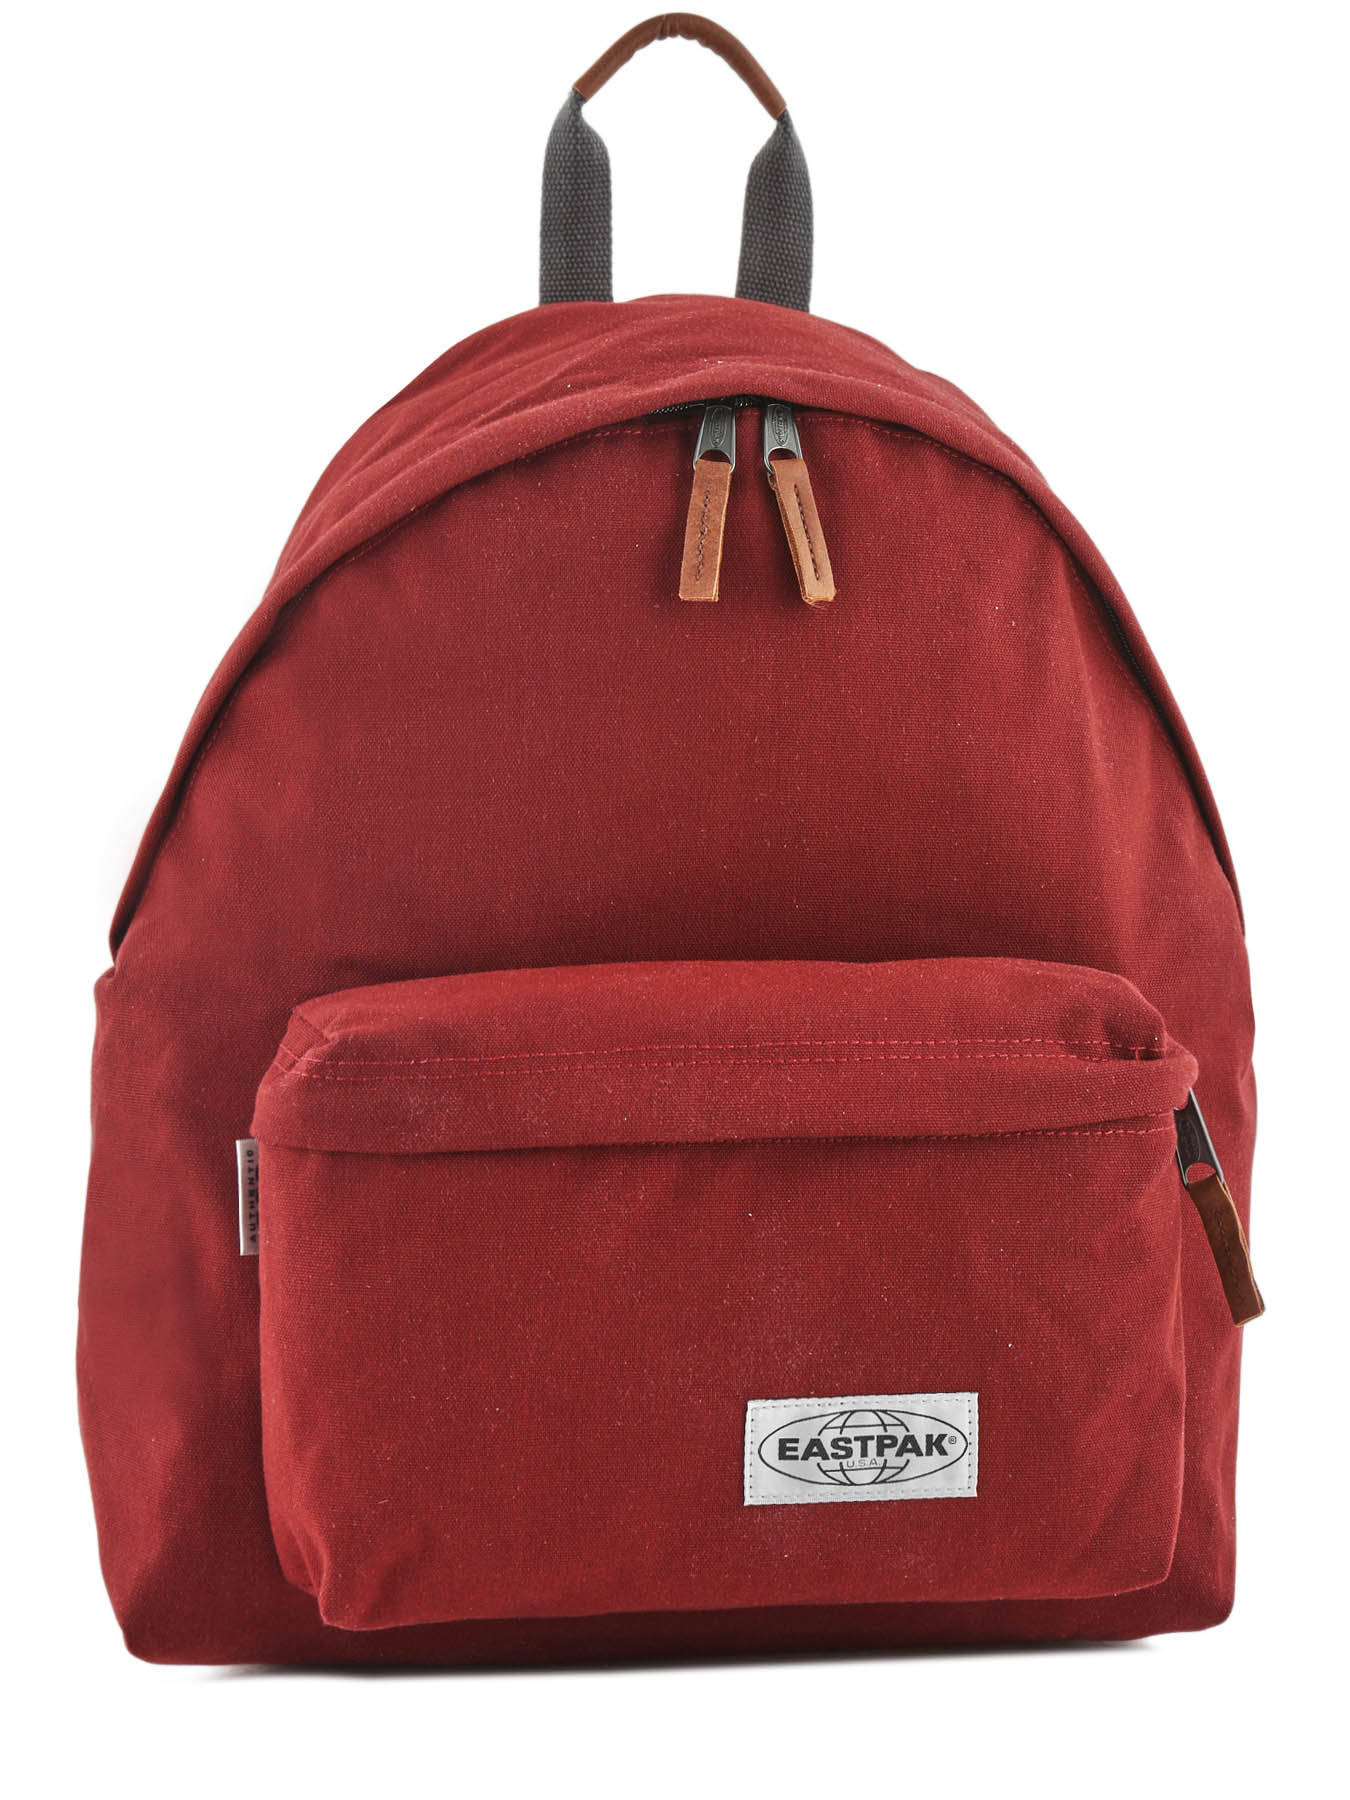 Authentic Opgrade Sur opgrade Dos À be Edisac Sac Padded Eastpak BtgIpwq